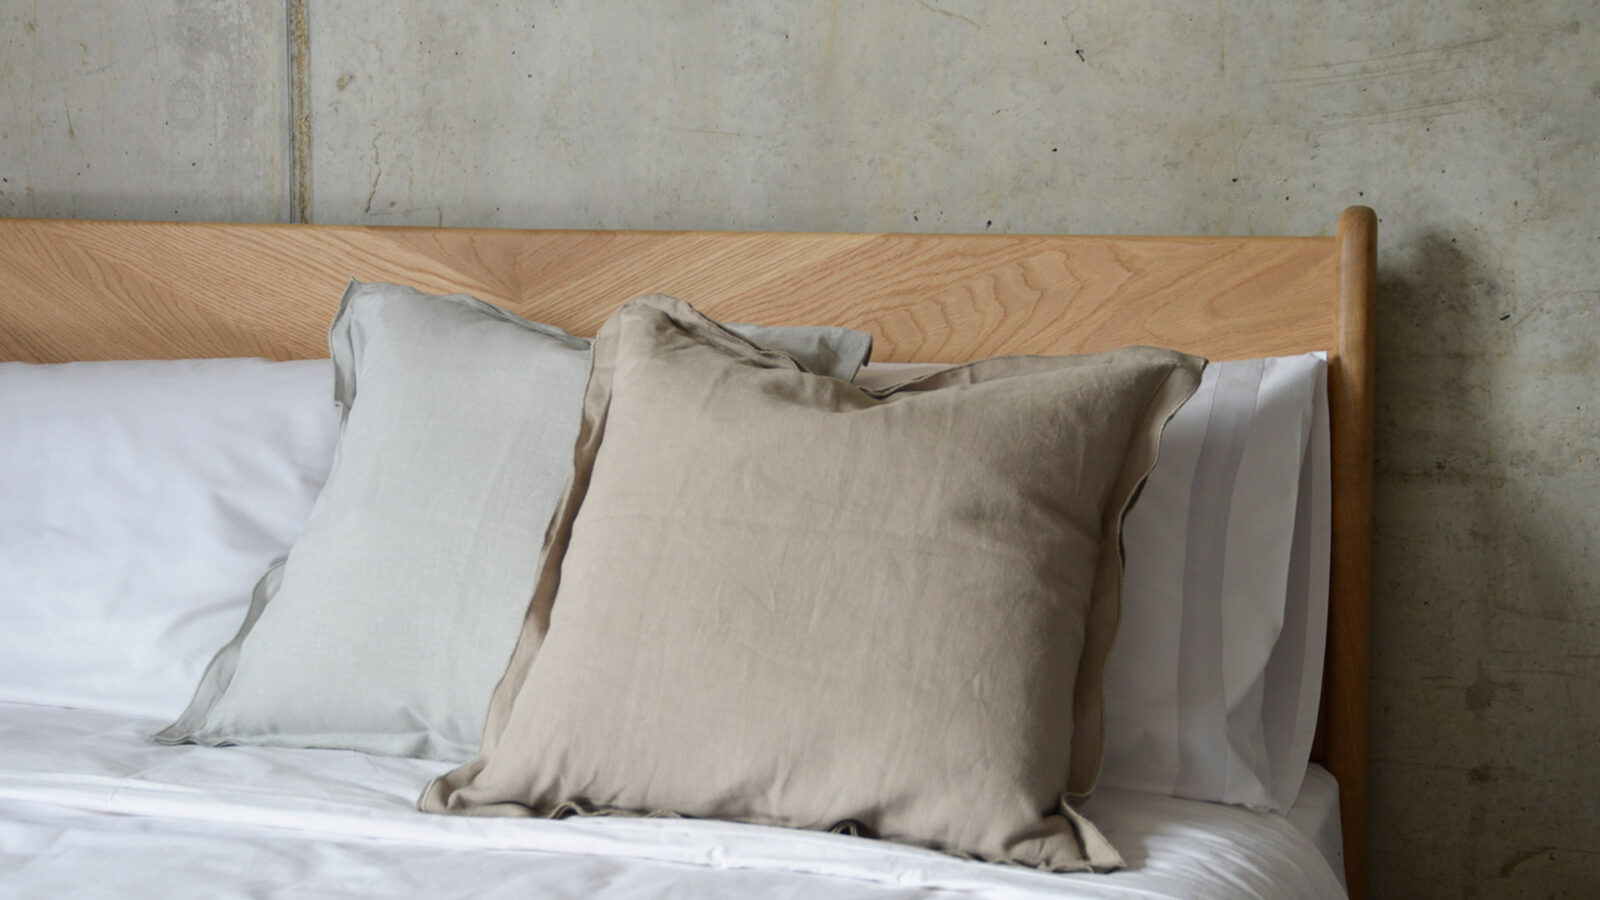 linen ruffle edge cushions in a choice of pale grey or taupe